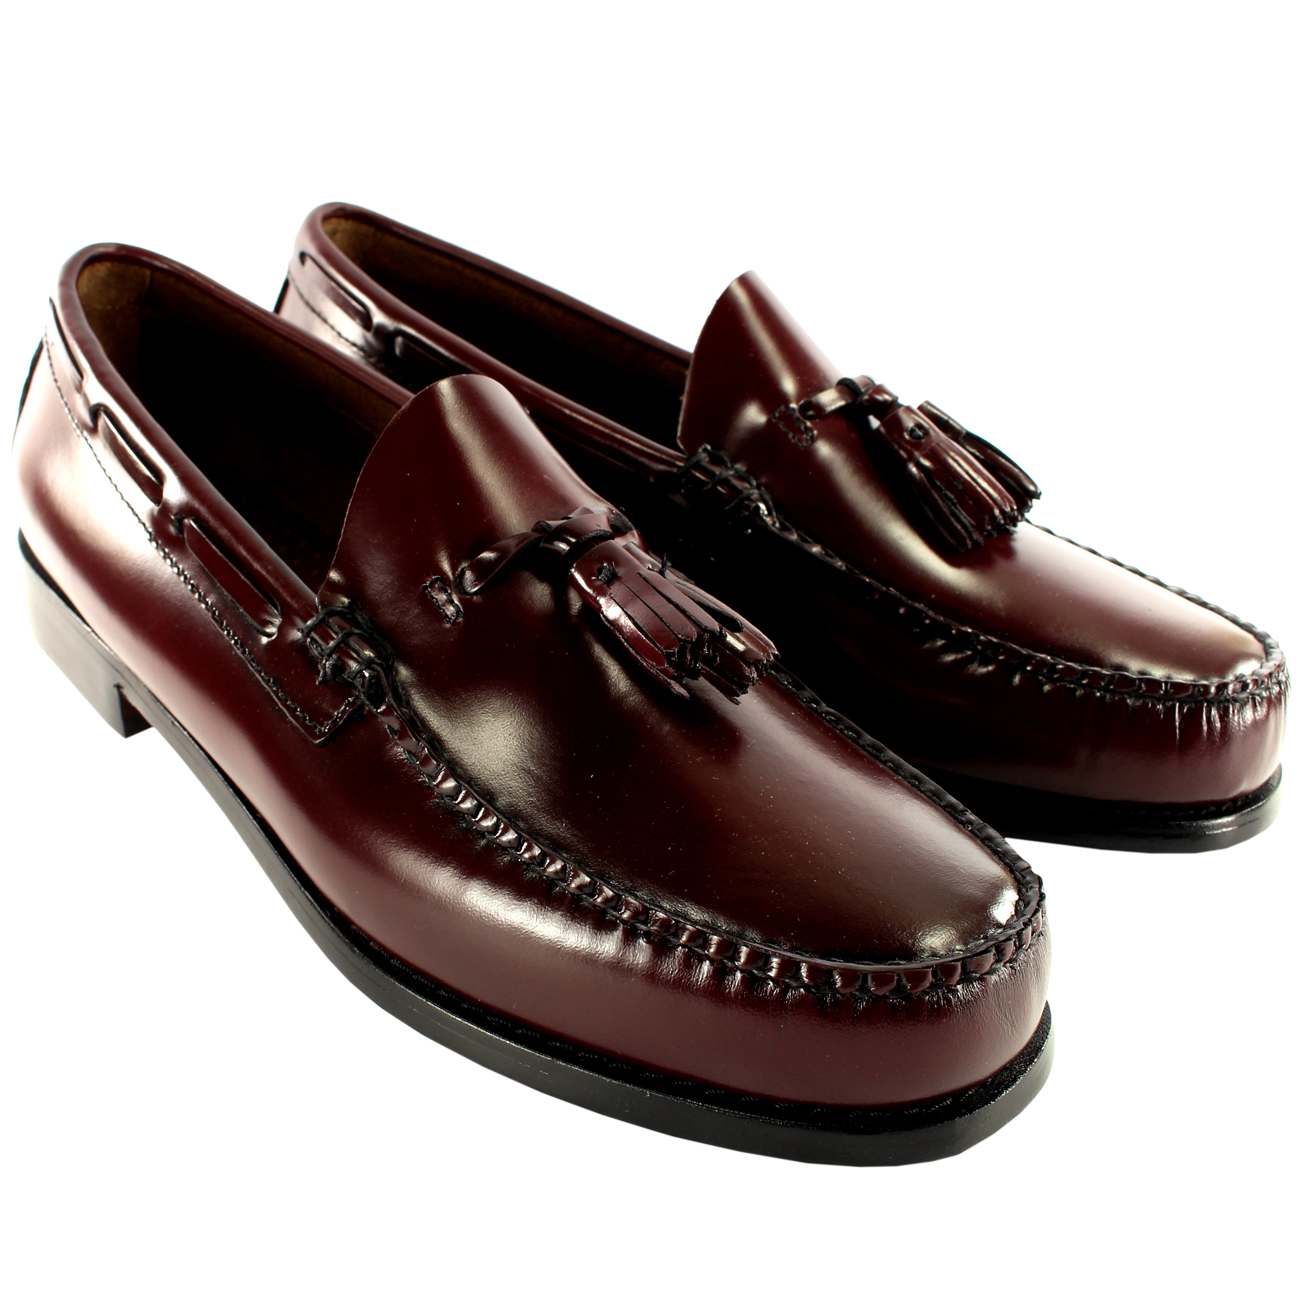 Product Features Two-tone leather dress shoe featuring contrast welt and brogue punch trims.